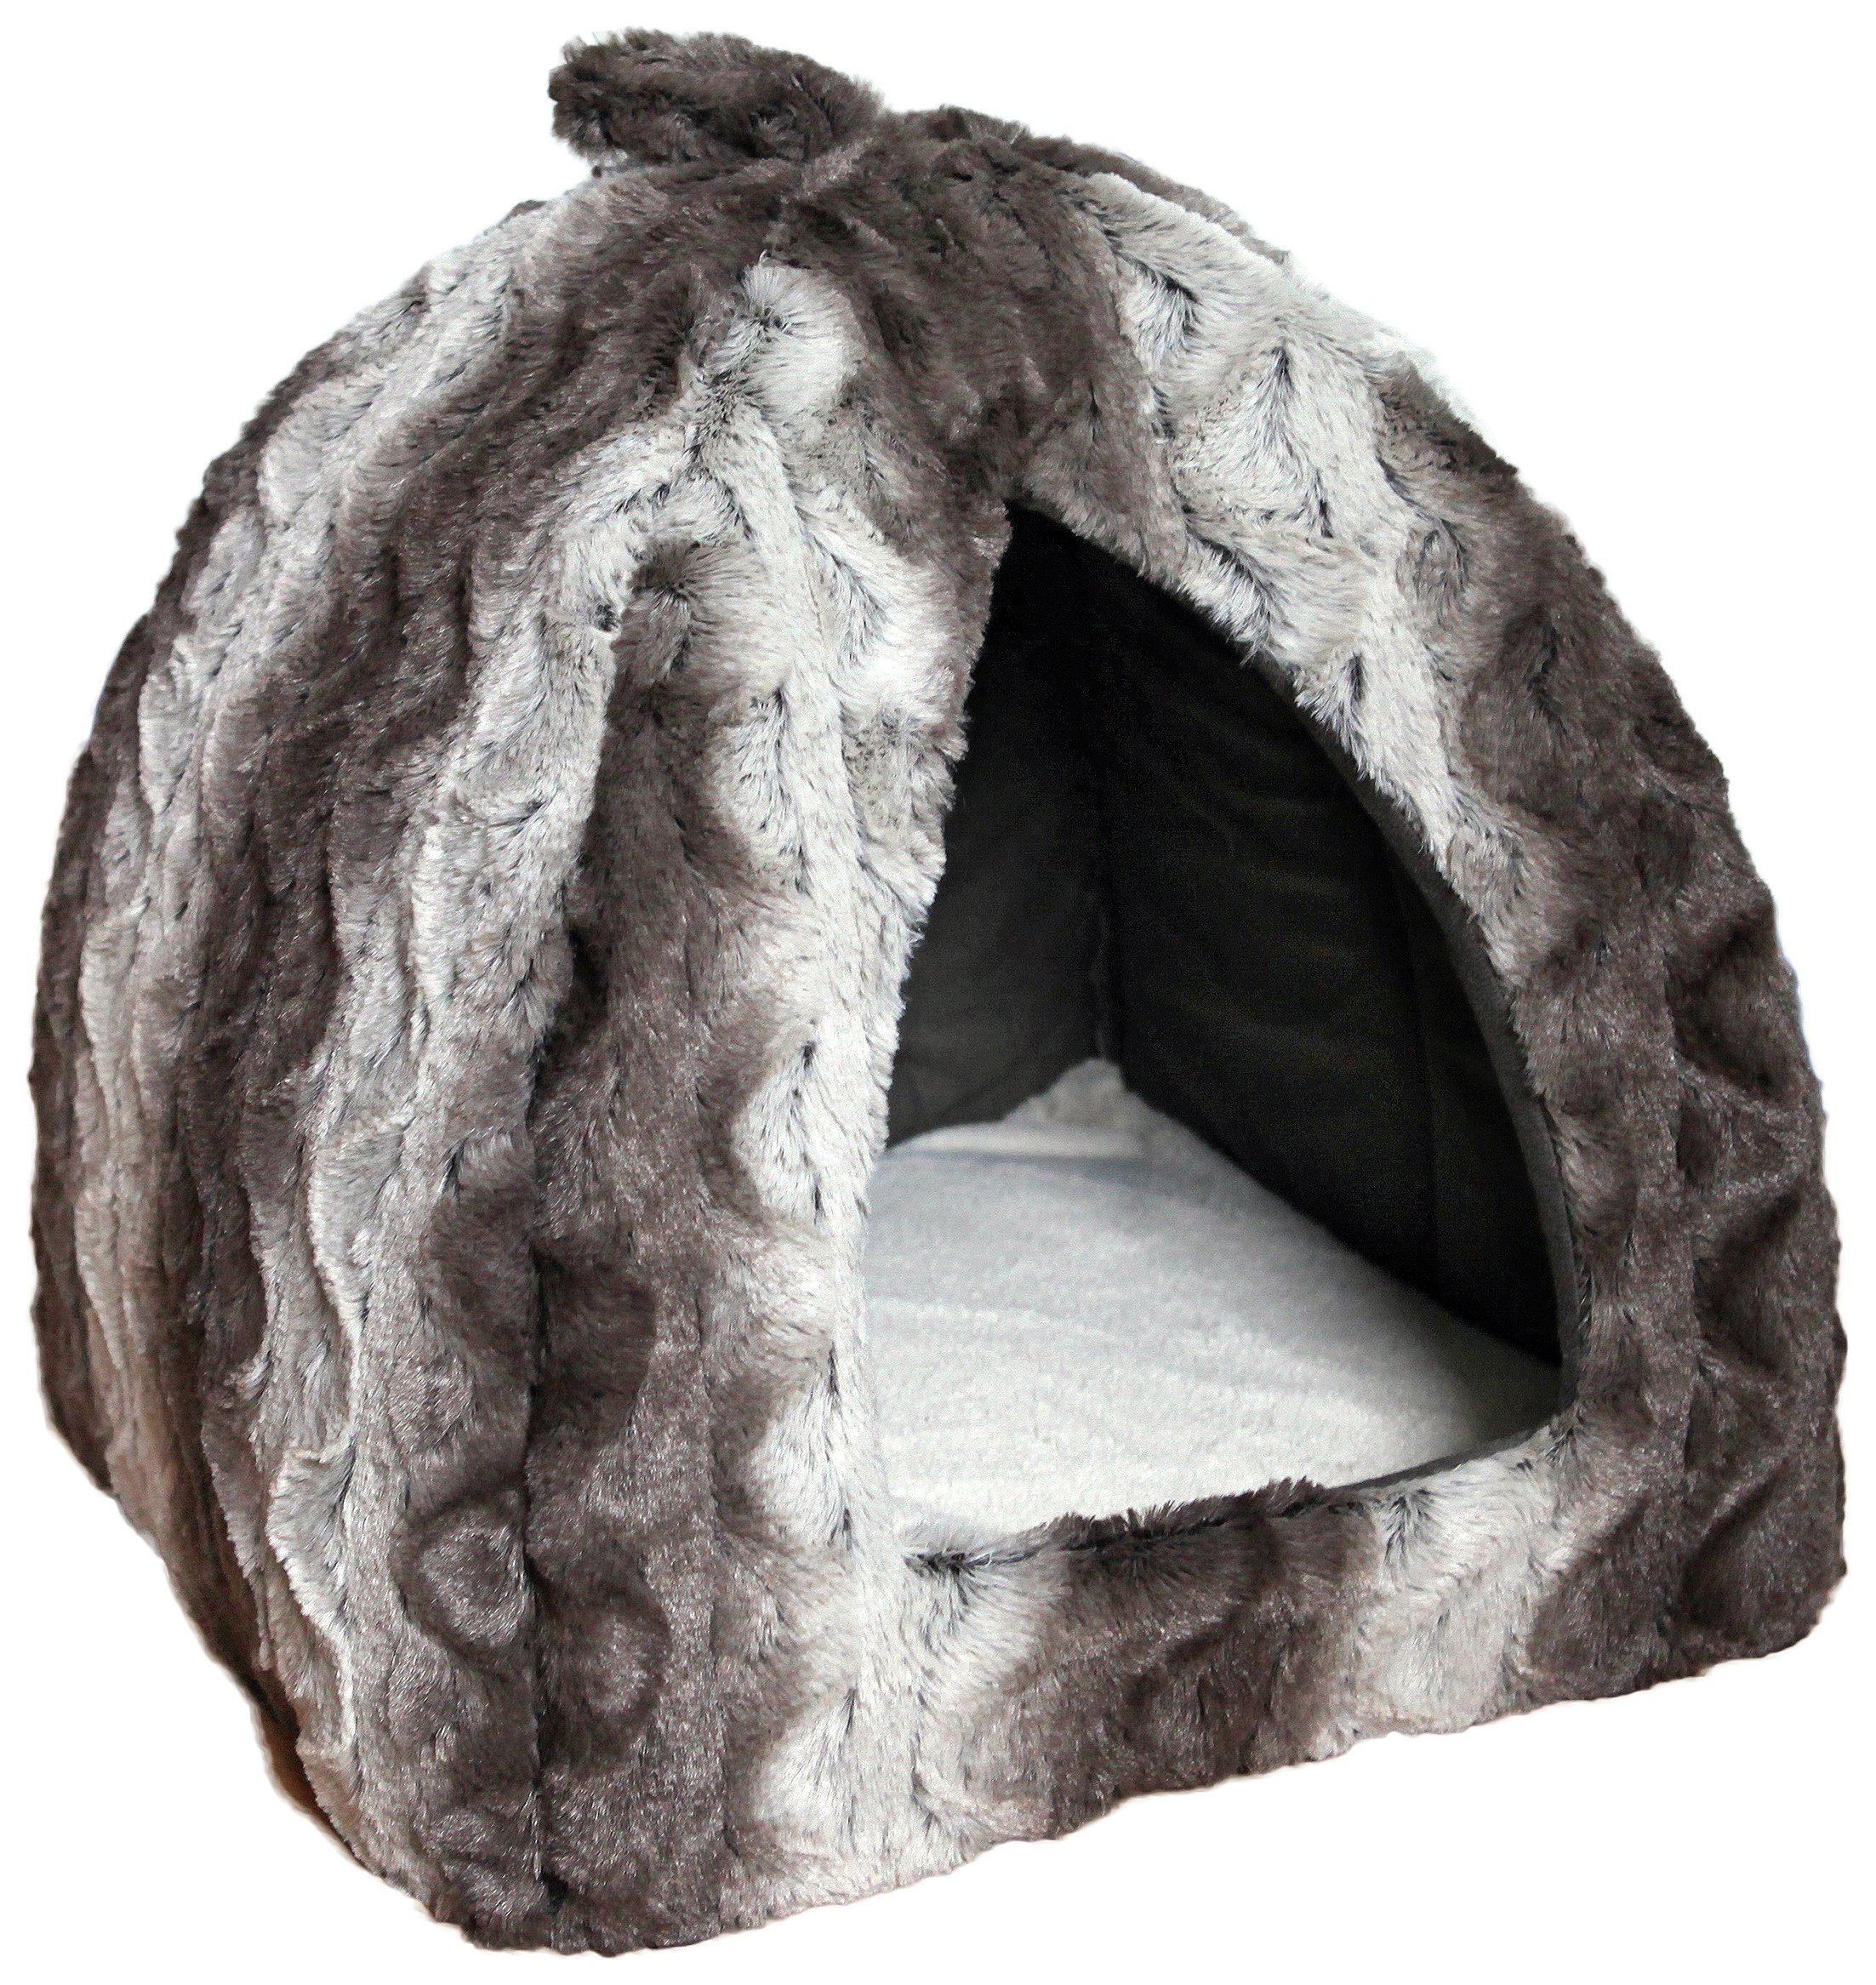 Rosewood Swirl Top Igloo